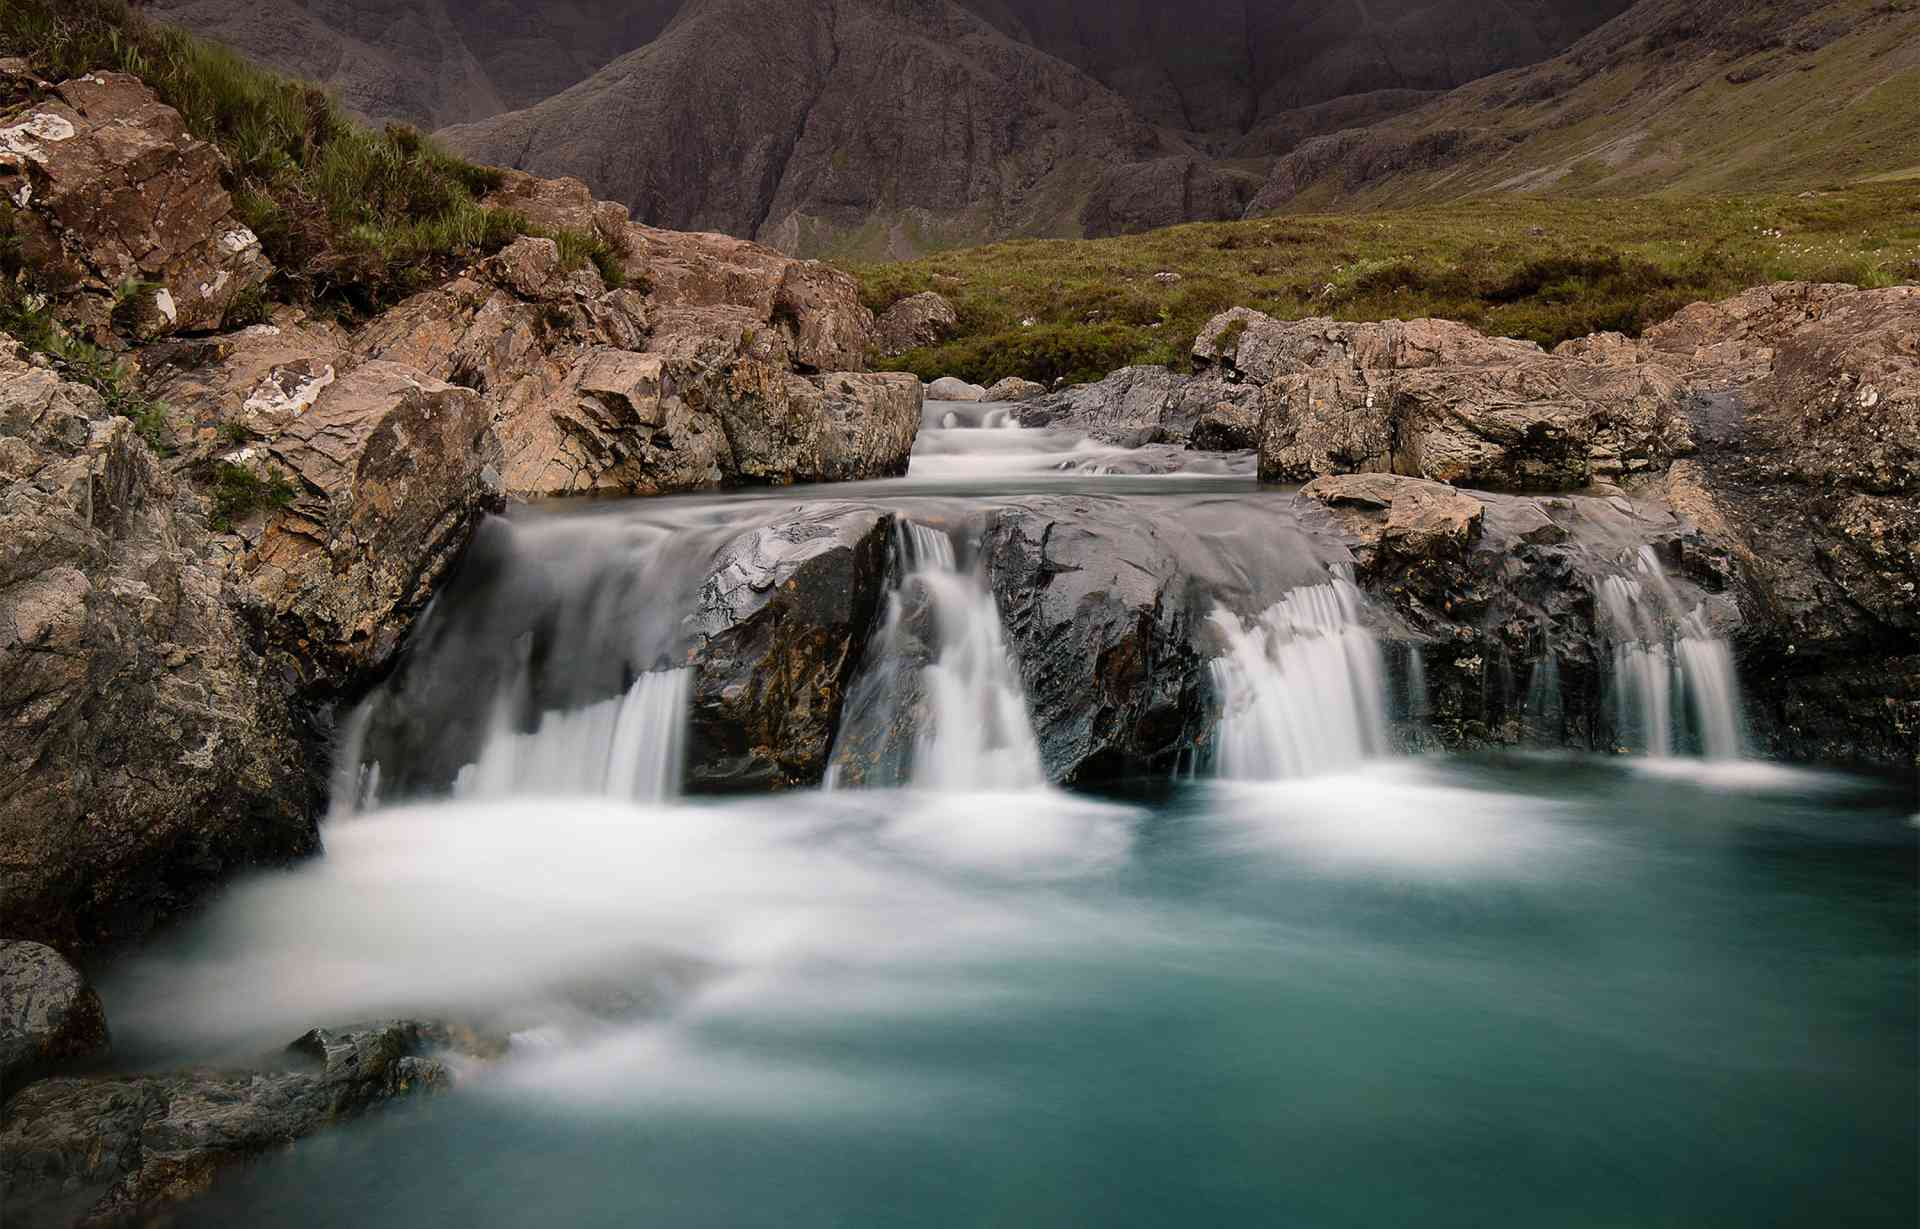 The fairy pools of Glenbrittle, Scotland